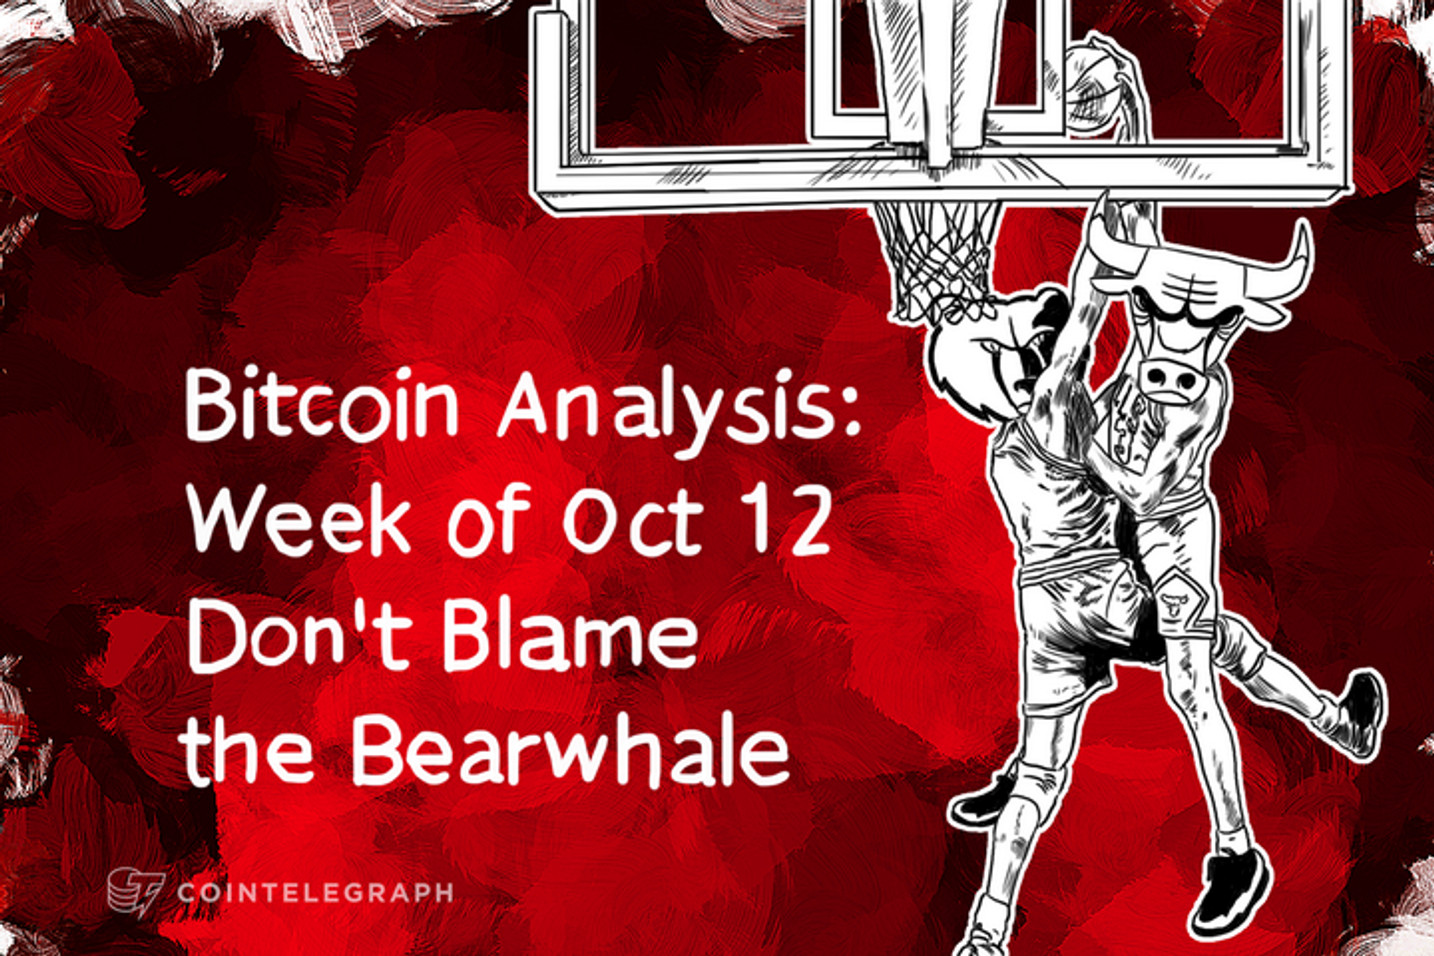 Bitcoin Analysis: Week of Oct 12 (Don't Blame the Bearwhale)